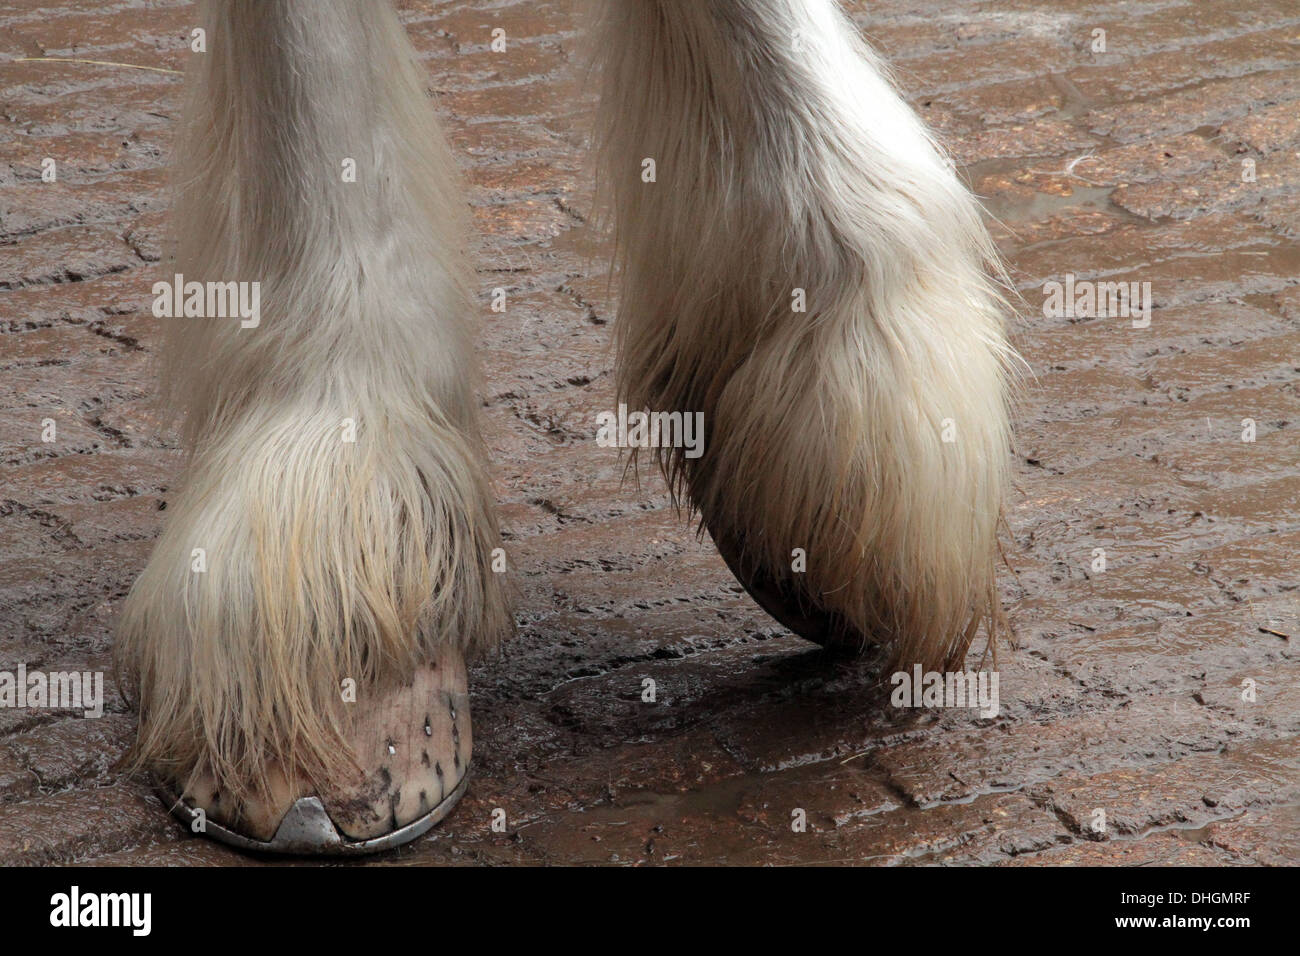 Shire horse  hooves - Stock Image